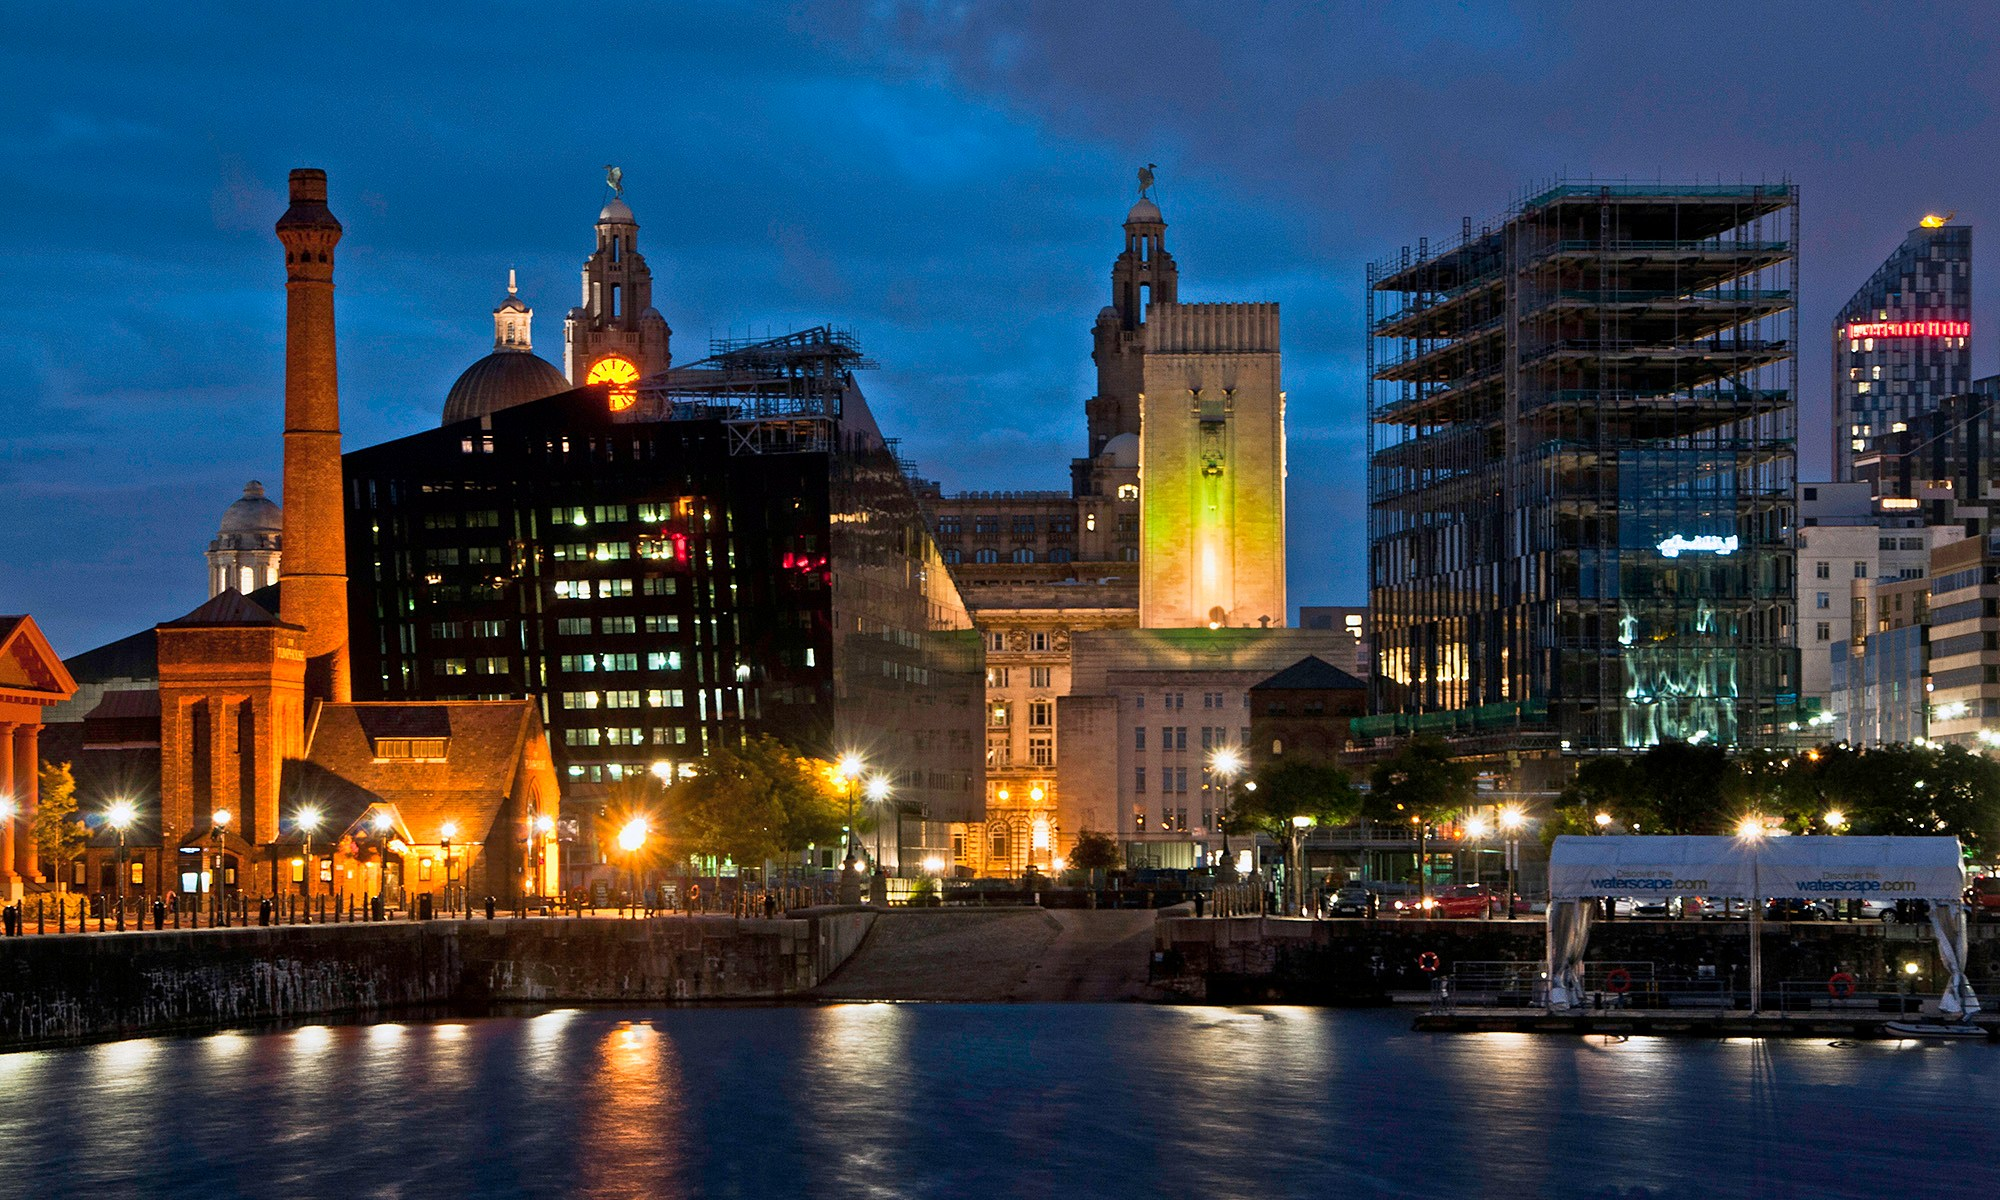 Liverpool's New Buildings at Night